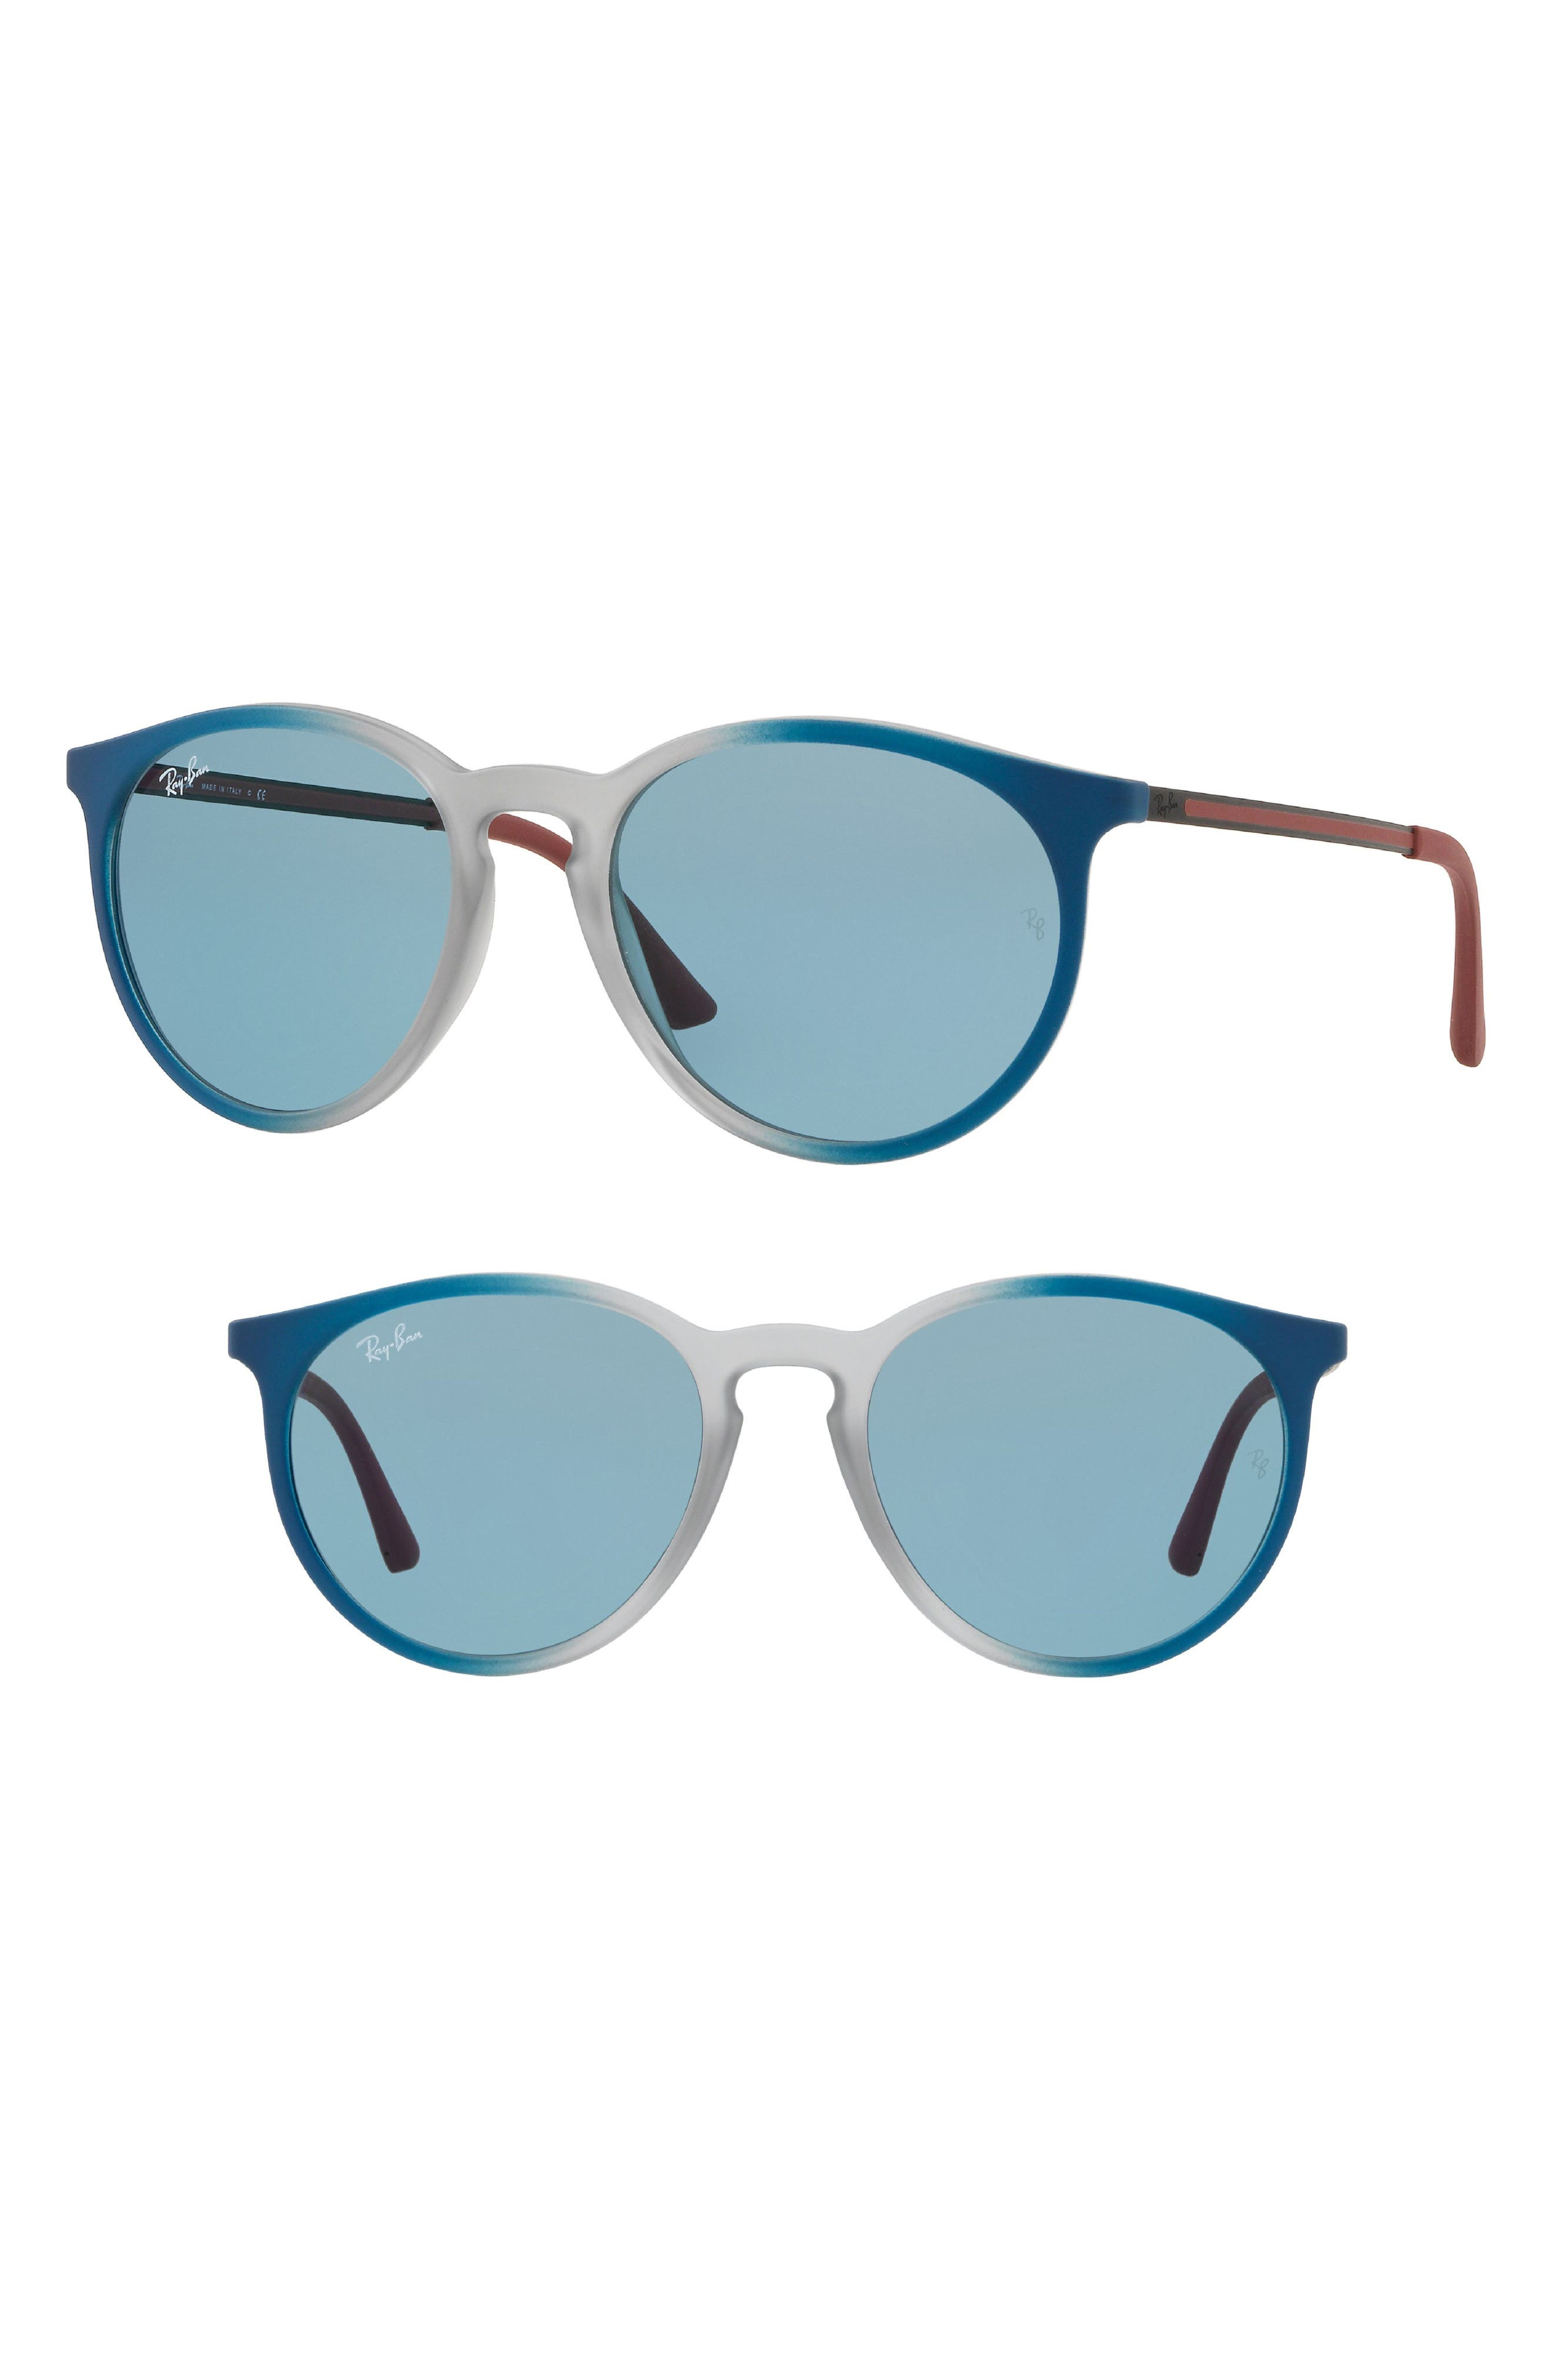 Youngster 53mm Round Sunglasses,                         Main,                         color, 428